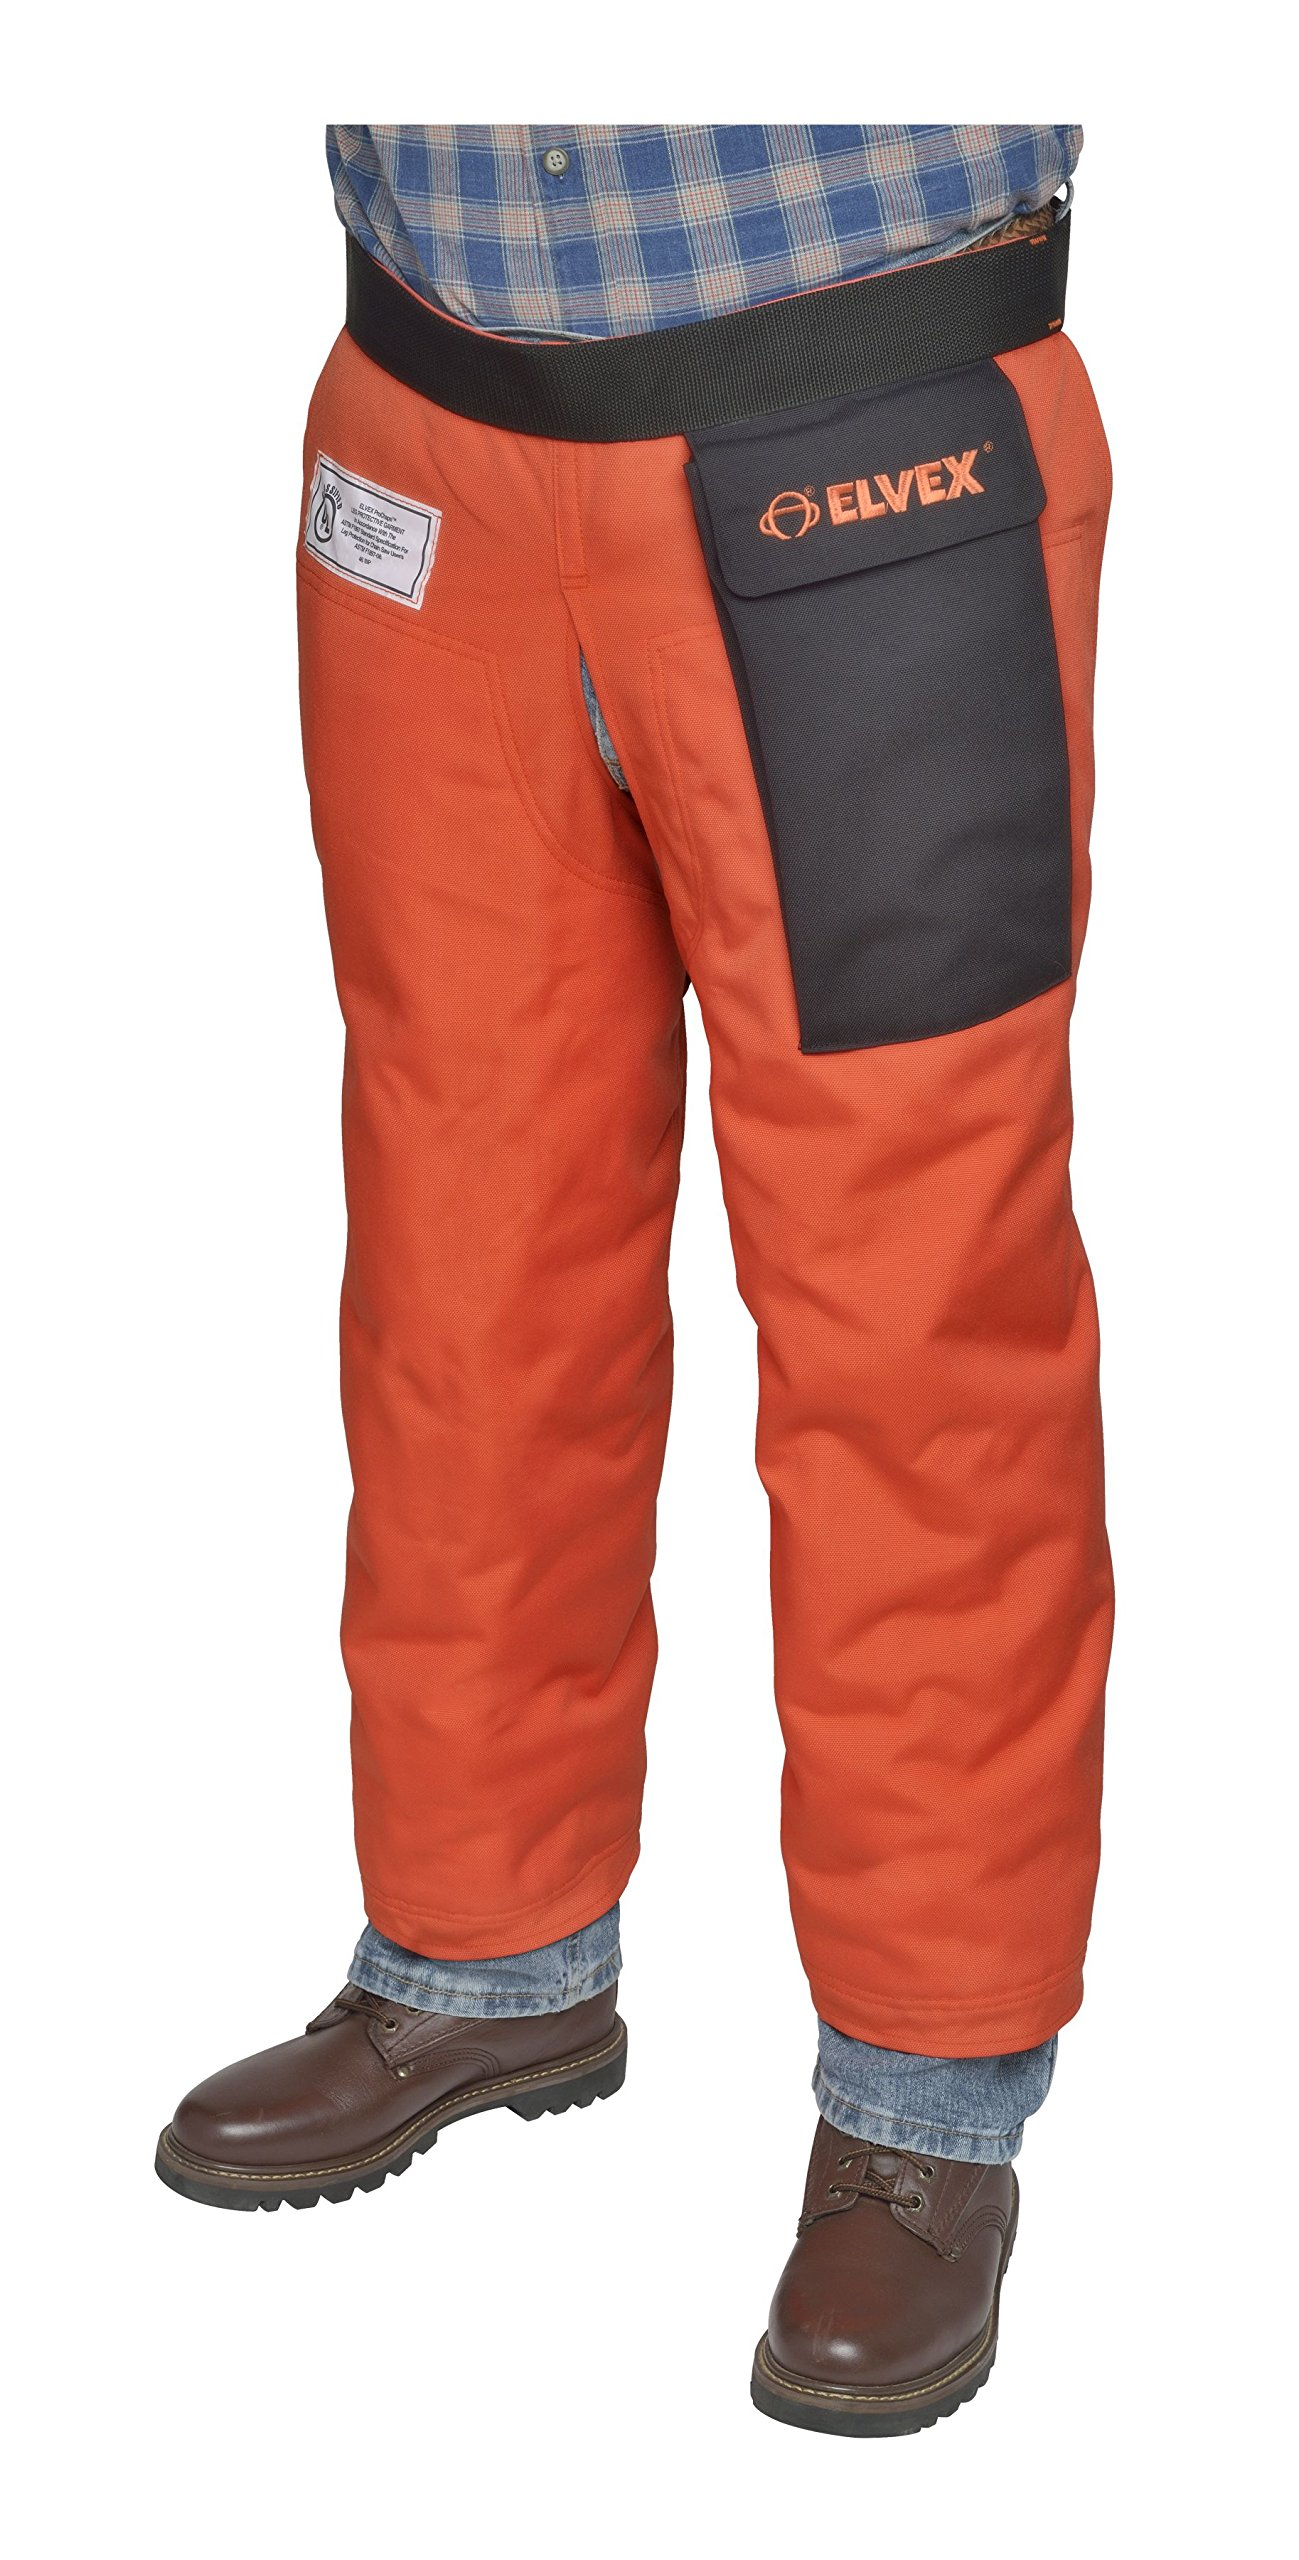 Elvex JE-9133Z ProChapsZ 1000 Denier Wrap Around Calf Protection with Zipper, 33'' Length from Waist, Orange